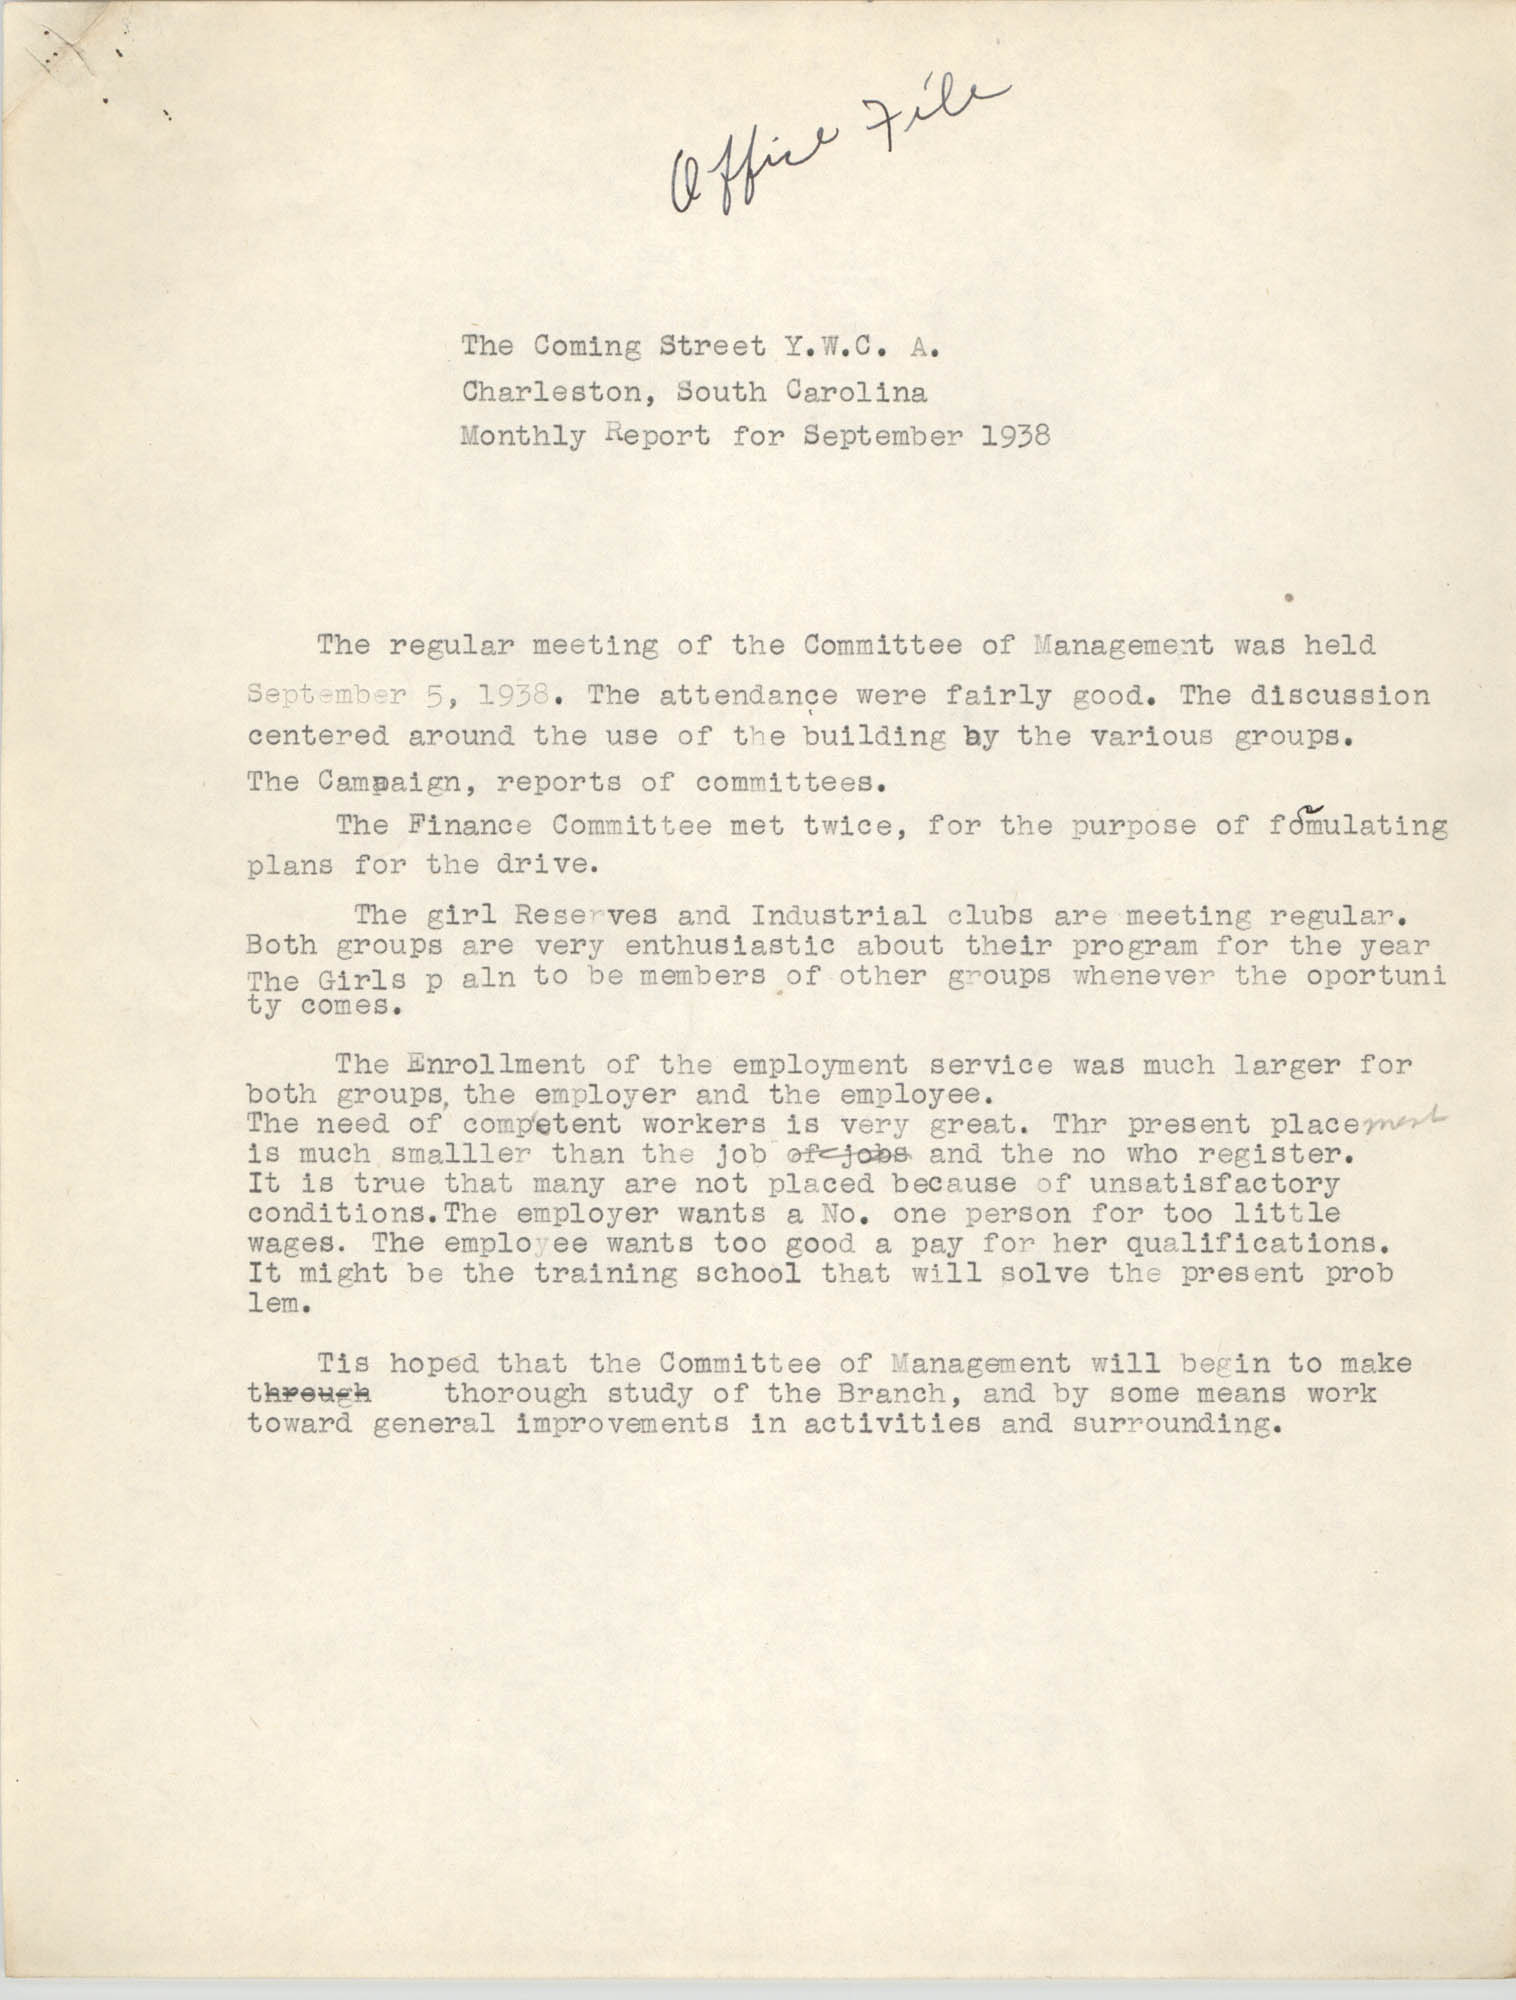 Monthly Report for the Coming Street Y.W.C.A., September 1938